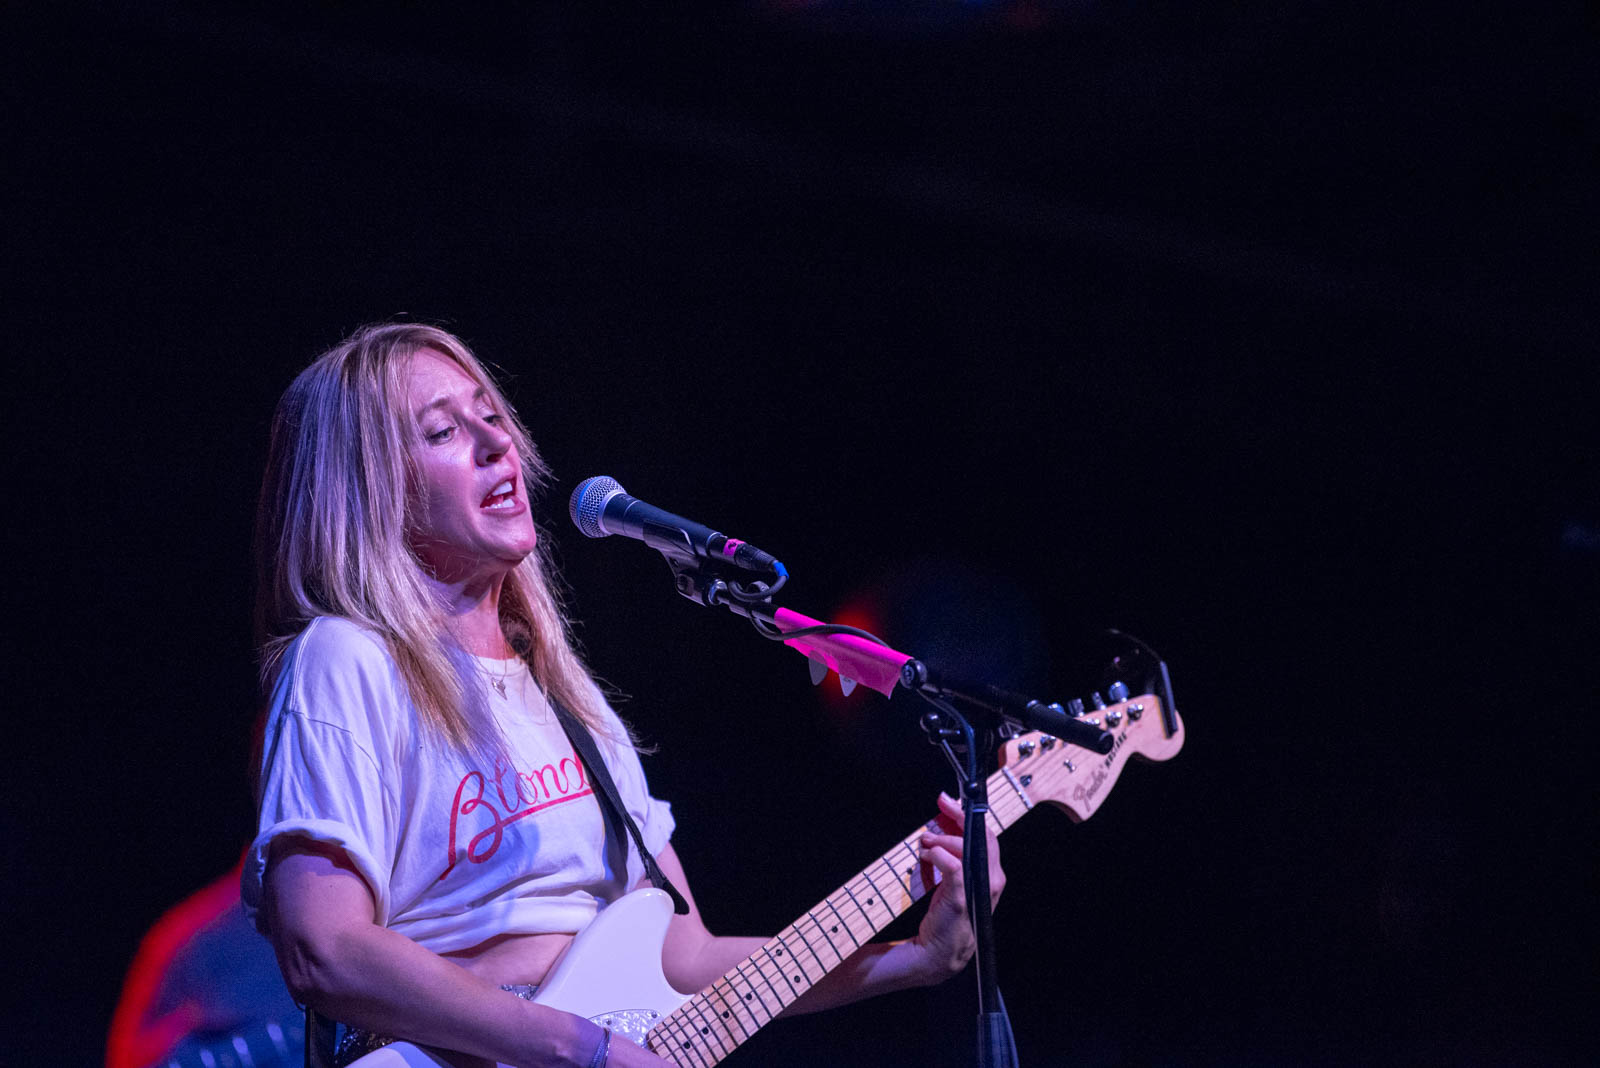 Liz Phair at House of Vans in Brooklyn, NY on Friday, July 20, 2018.